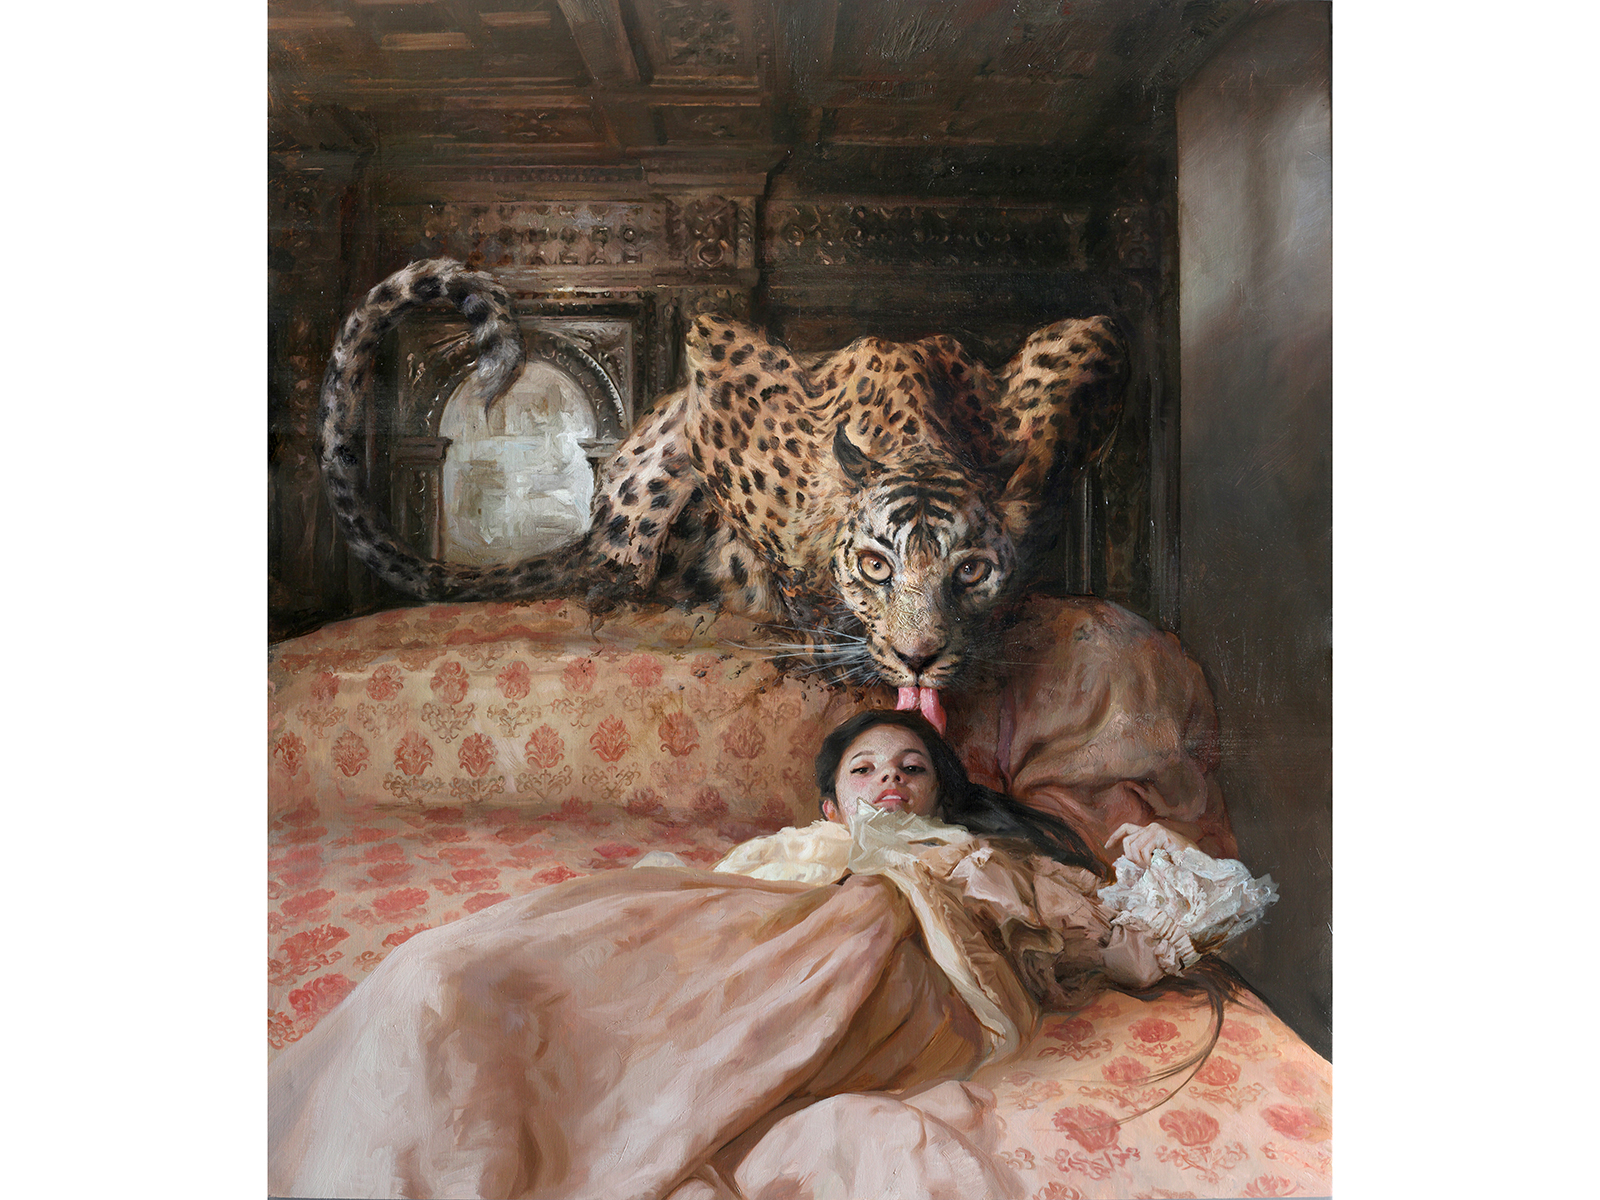 a Cama Inglesa, an oil painting by Guillermo Lorca